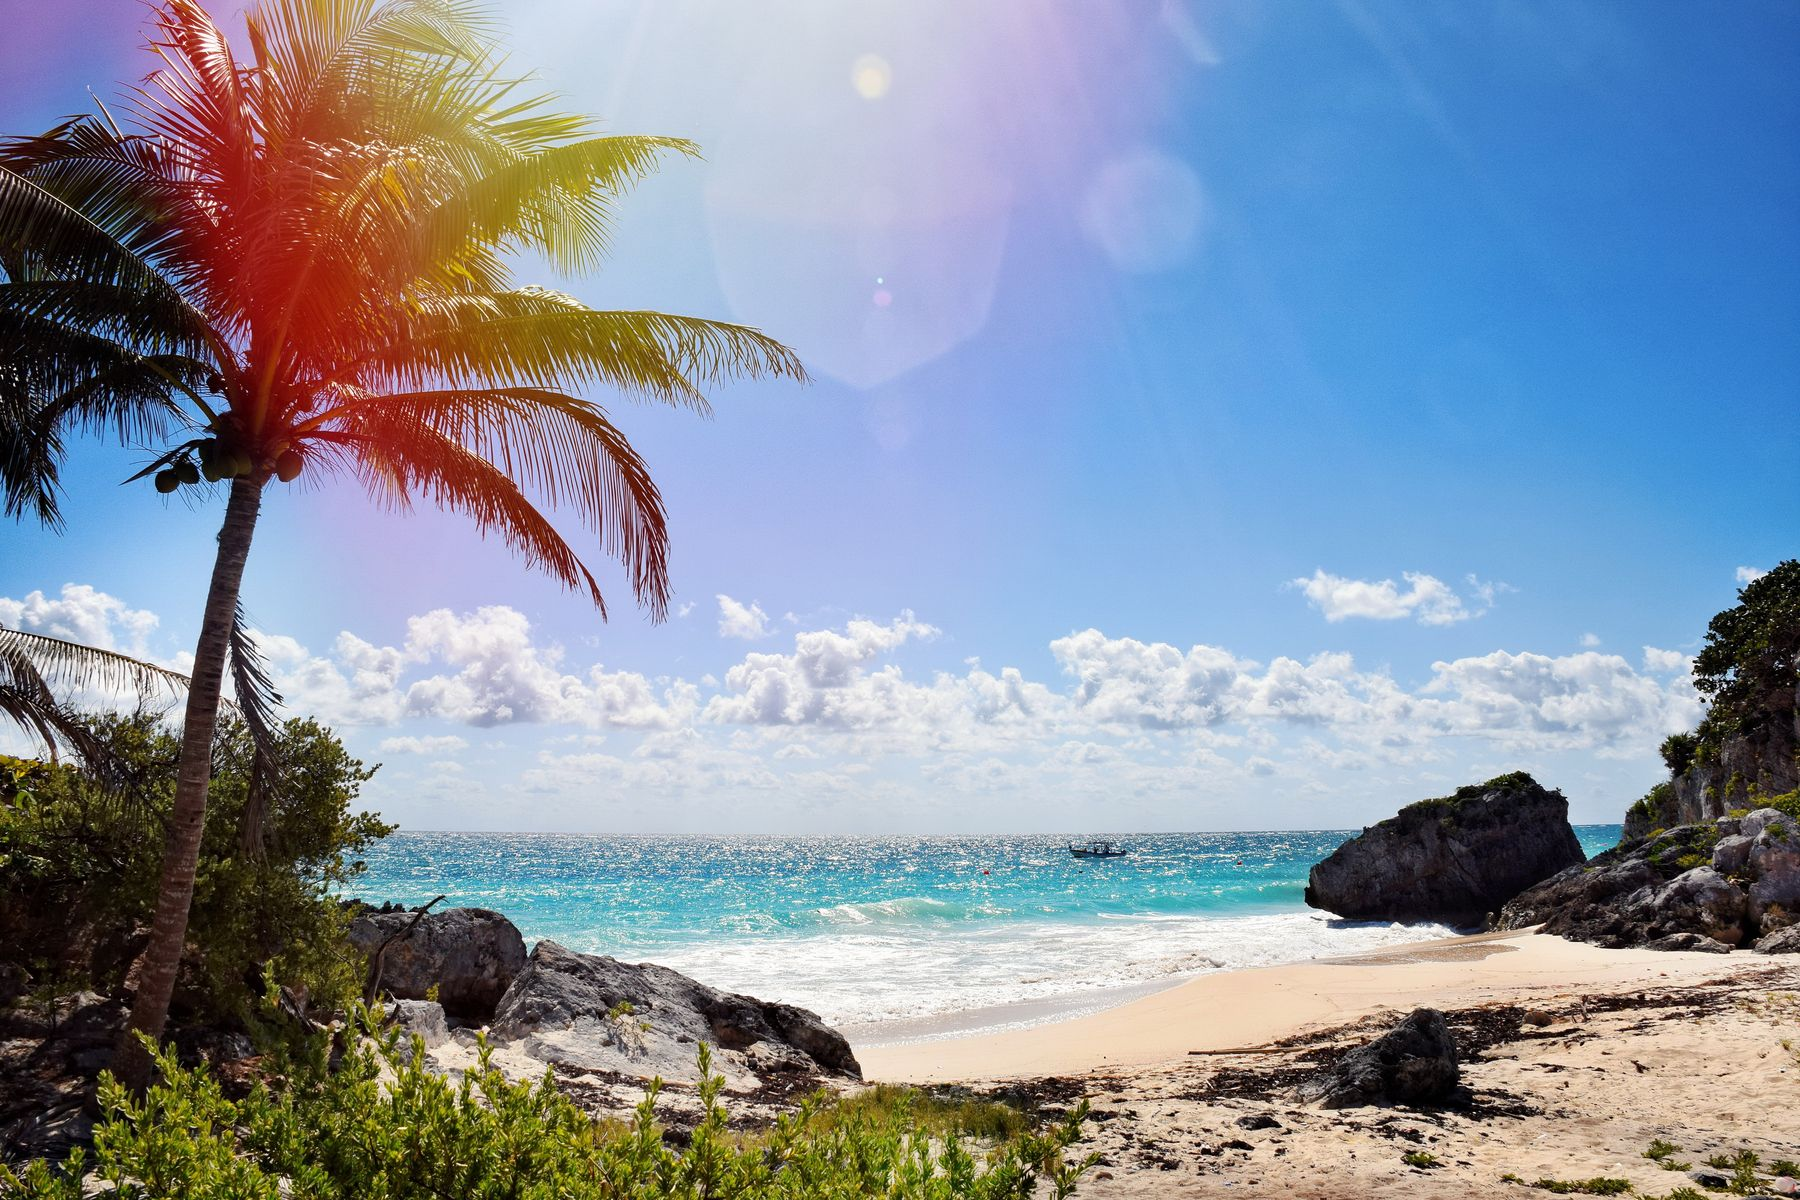 a sunny day on a clear ocean beach surrounded by a palm tree and rocks